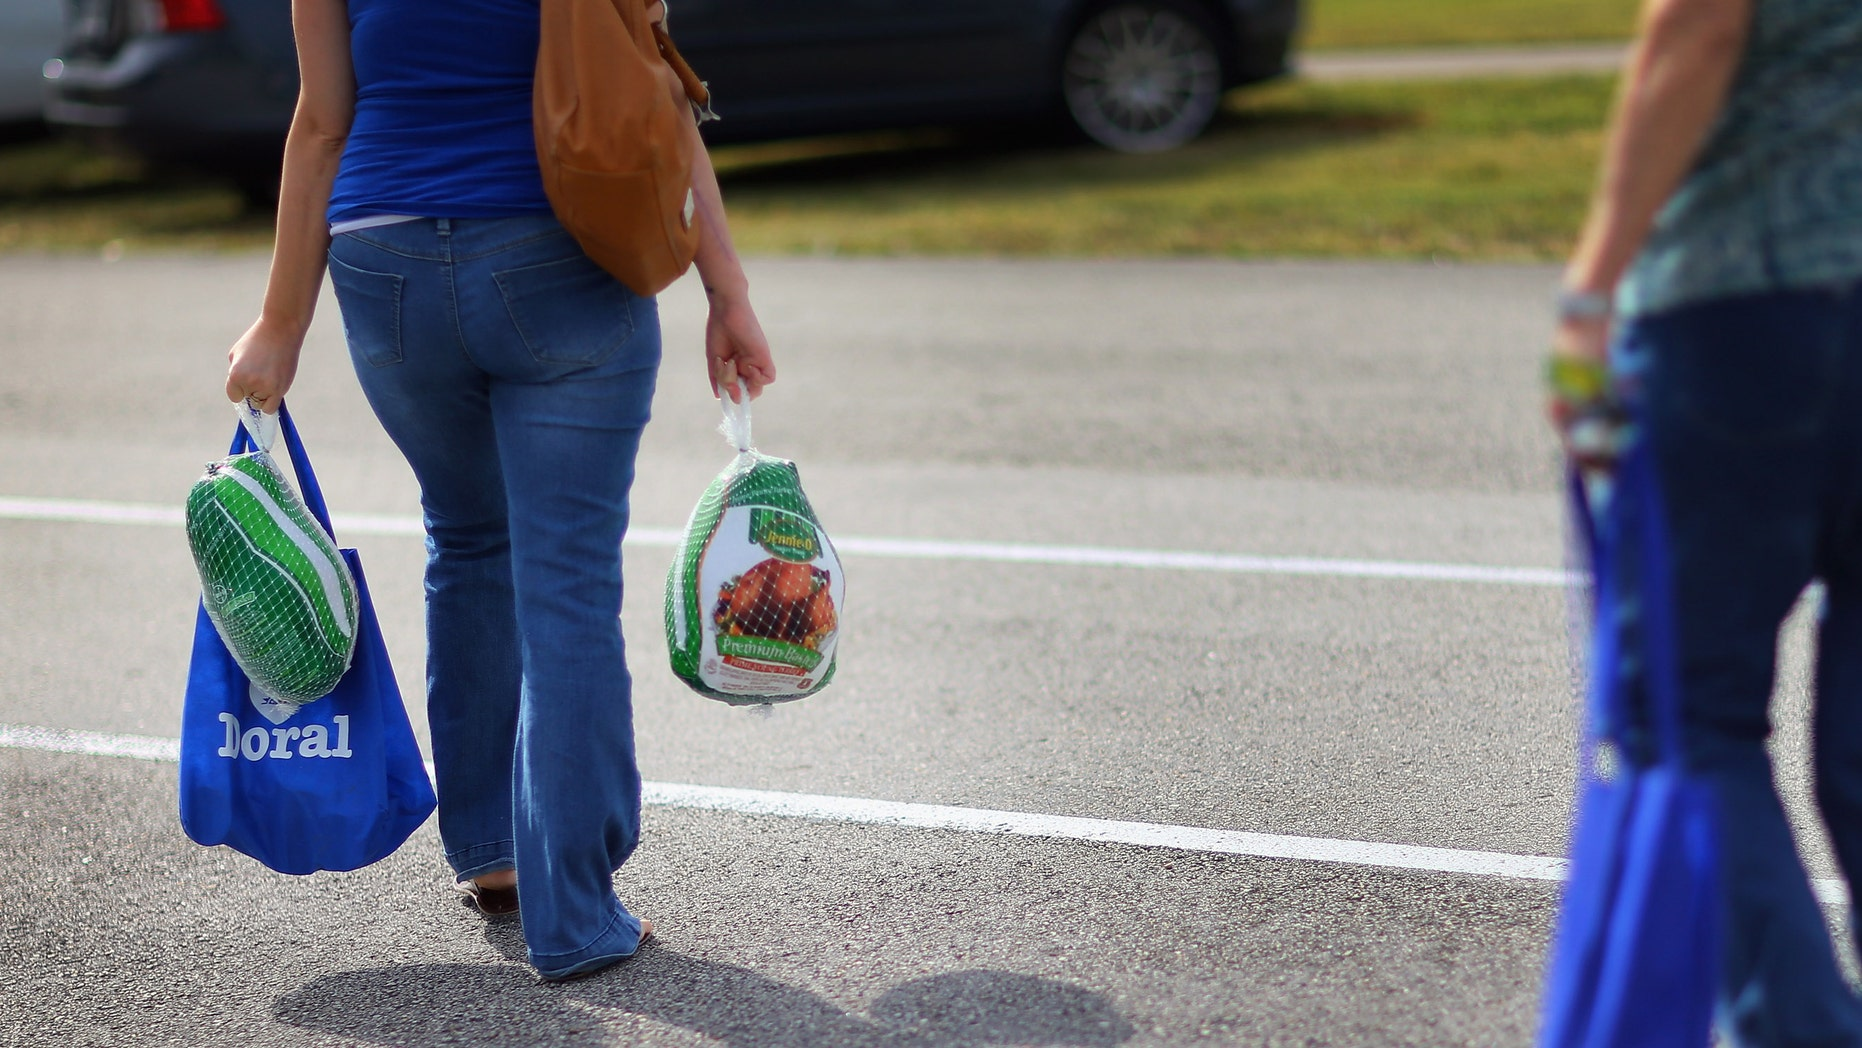 DORAL, FL - NOVEMBER 13:  Jessica Lopez walks away with the turkeys she received at a turkey give-a-way, as people prepare for the upcoming Thanksgiving holiday on November 13, 2012 in Doral, Florida.  The event was put on by the City of Sweetwater and the Miami Dade League of Cities to distribute 1000 turkeys and non-perishable items to four municipalities located throughout Miami-Dade County. (Photo by Joe Raedle/Getty Images)